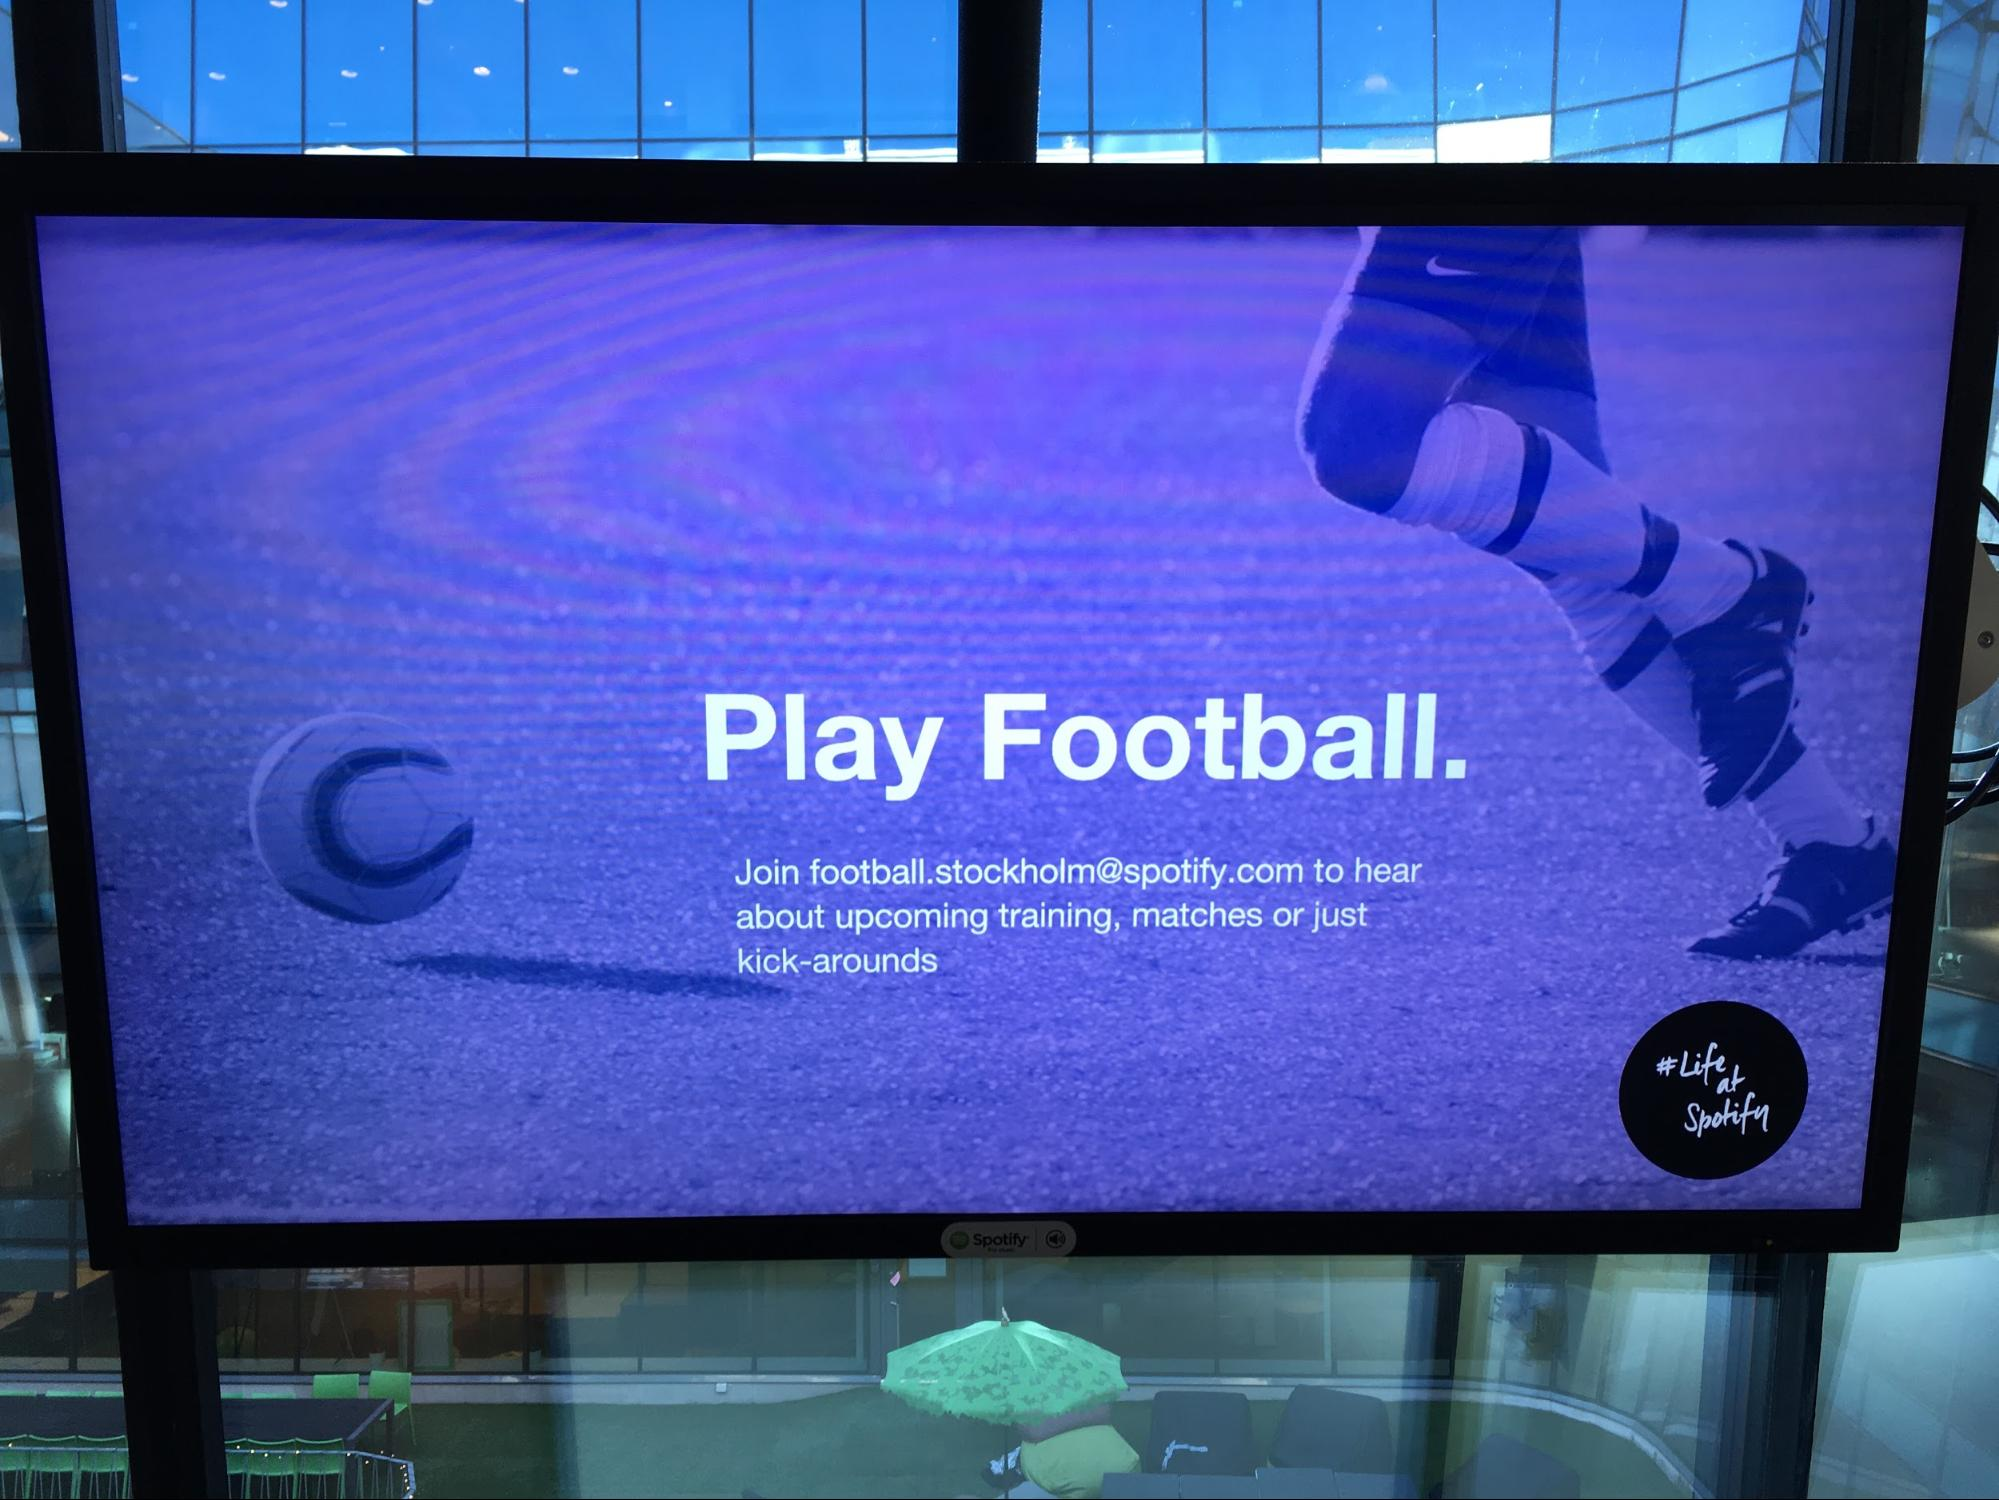 Corporate Digital Signage | Office Communication | Play Football Wallboard Display